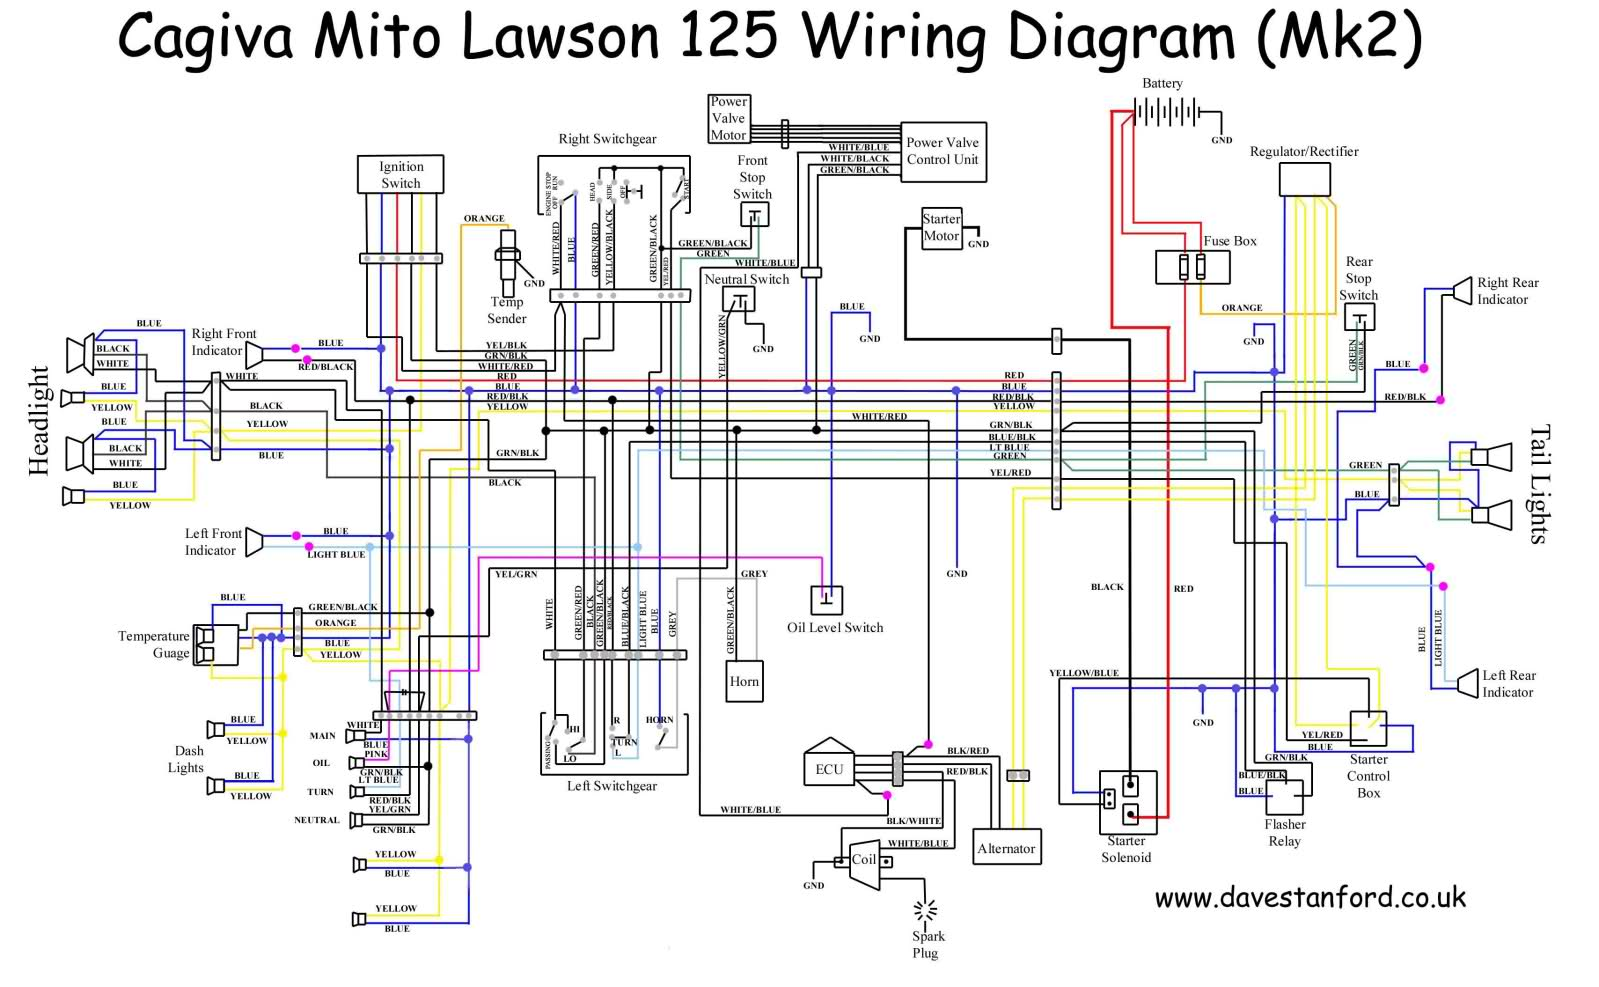 small resolution of cagiva mito 125 cagiva mito 125 wiring diagrams electrics cagiva mito bike show cagiva mito power valve wiring